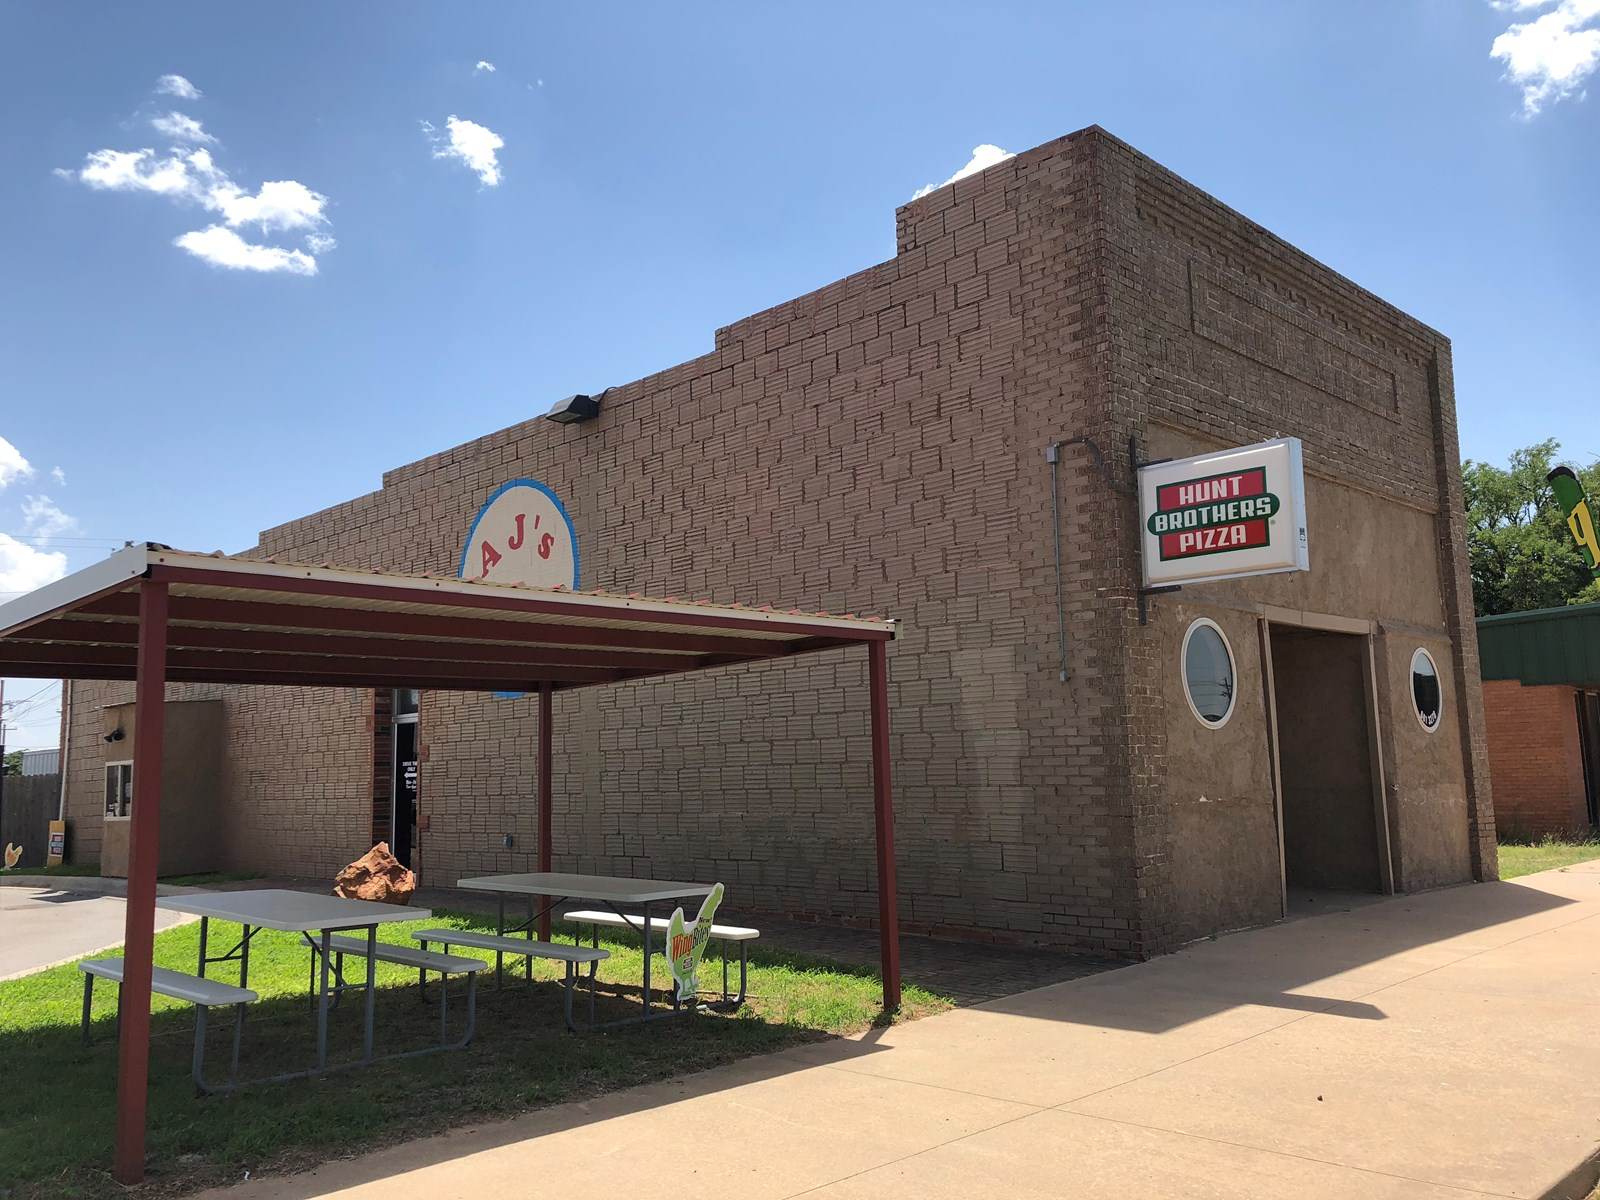 FOR SALE Commercial Building/Restaurant, Custer CO, Thomas